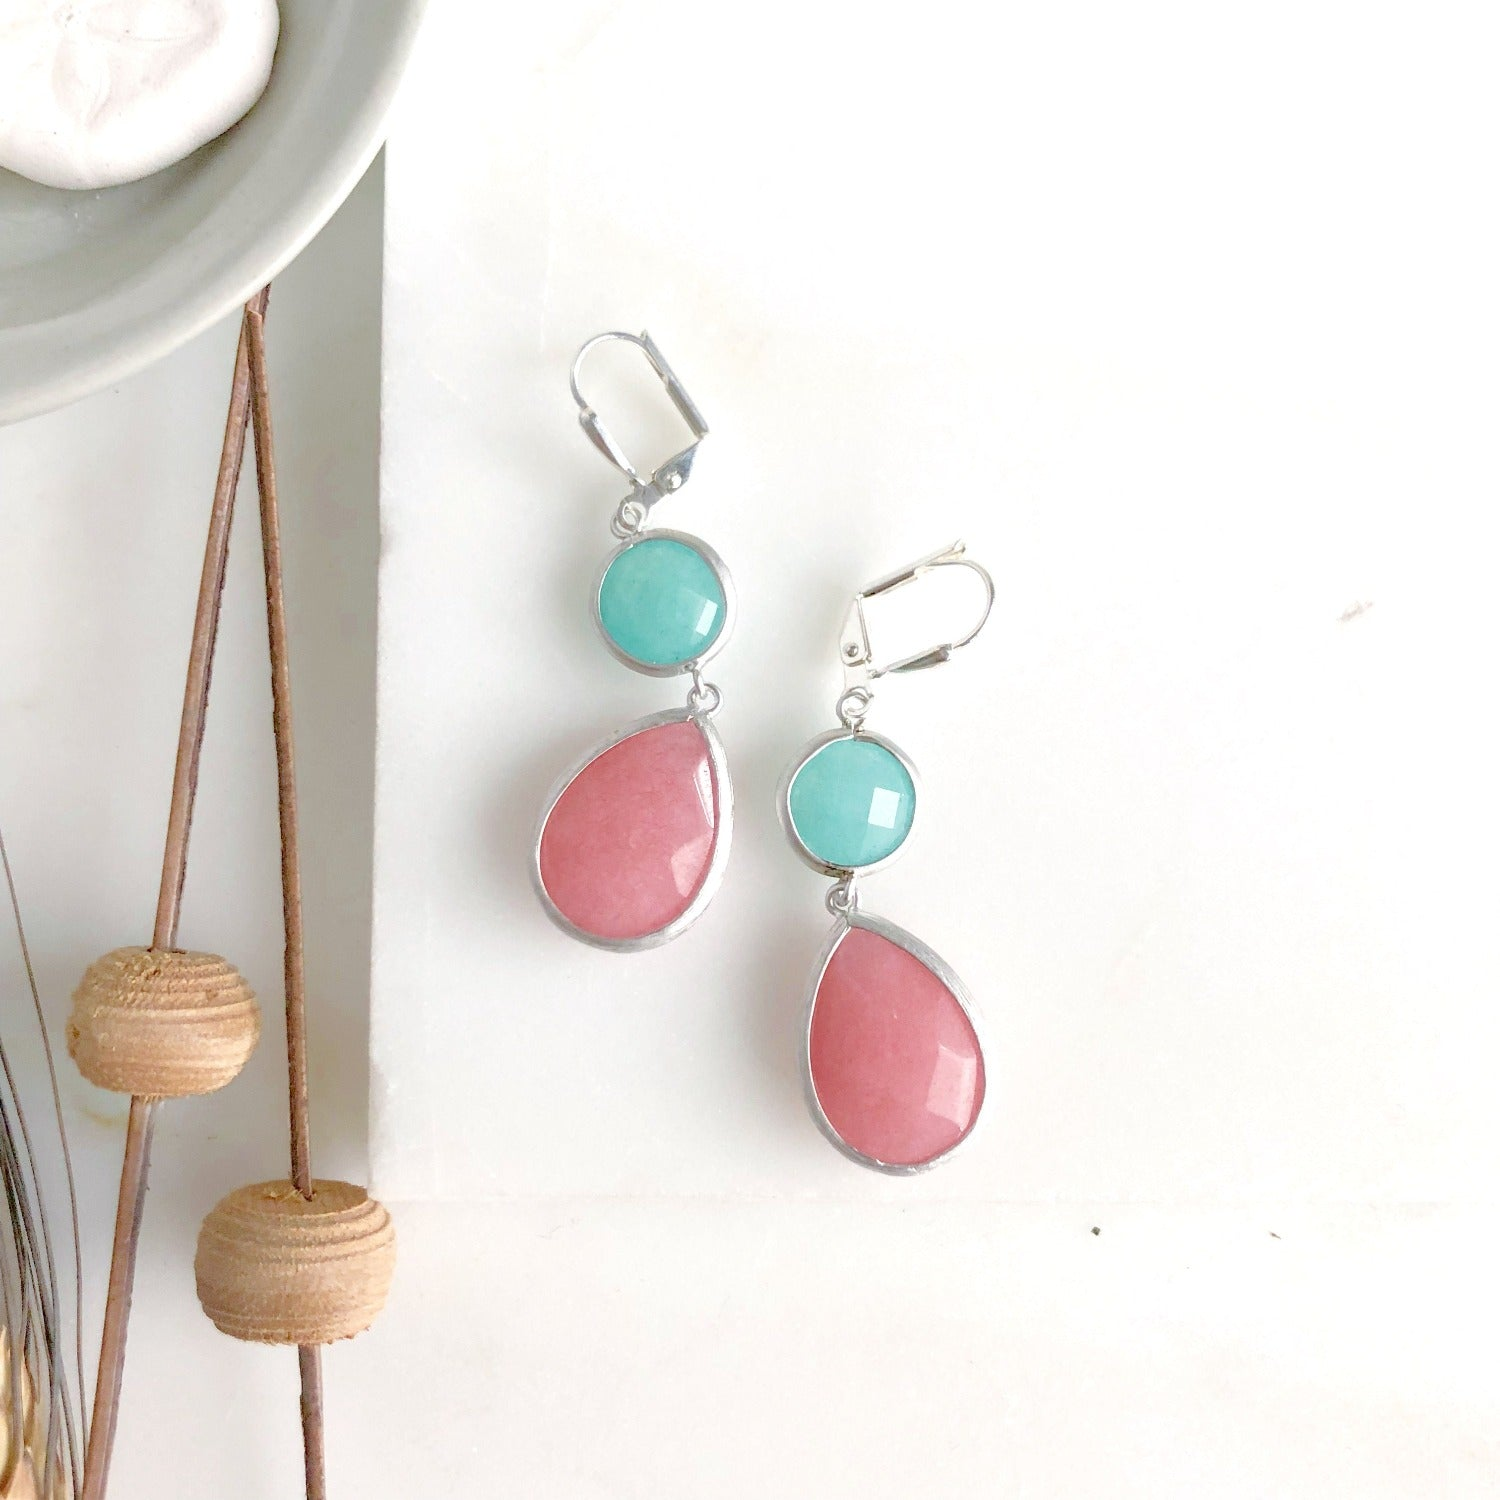 Pink Teardrop and Turquoise Stone Dangle Earrings. Fall Fashion Earrings. Jewelry Gift.